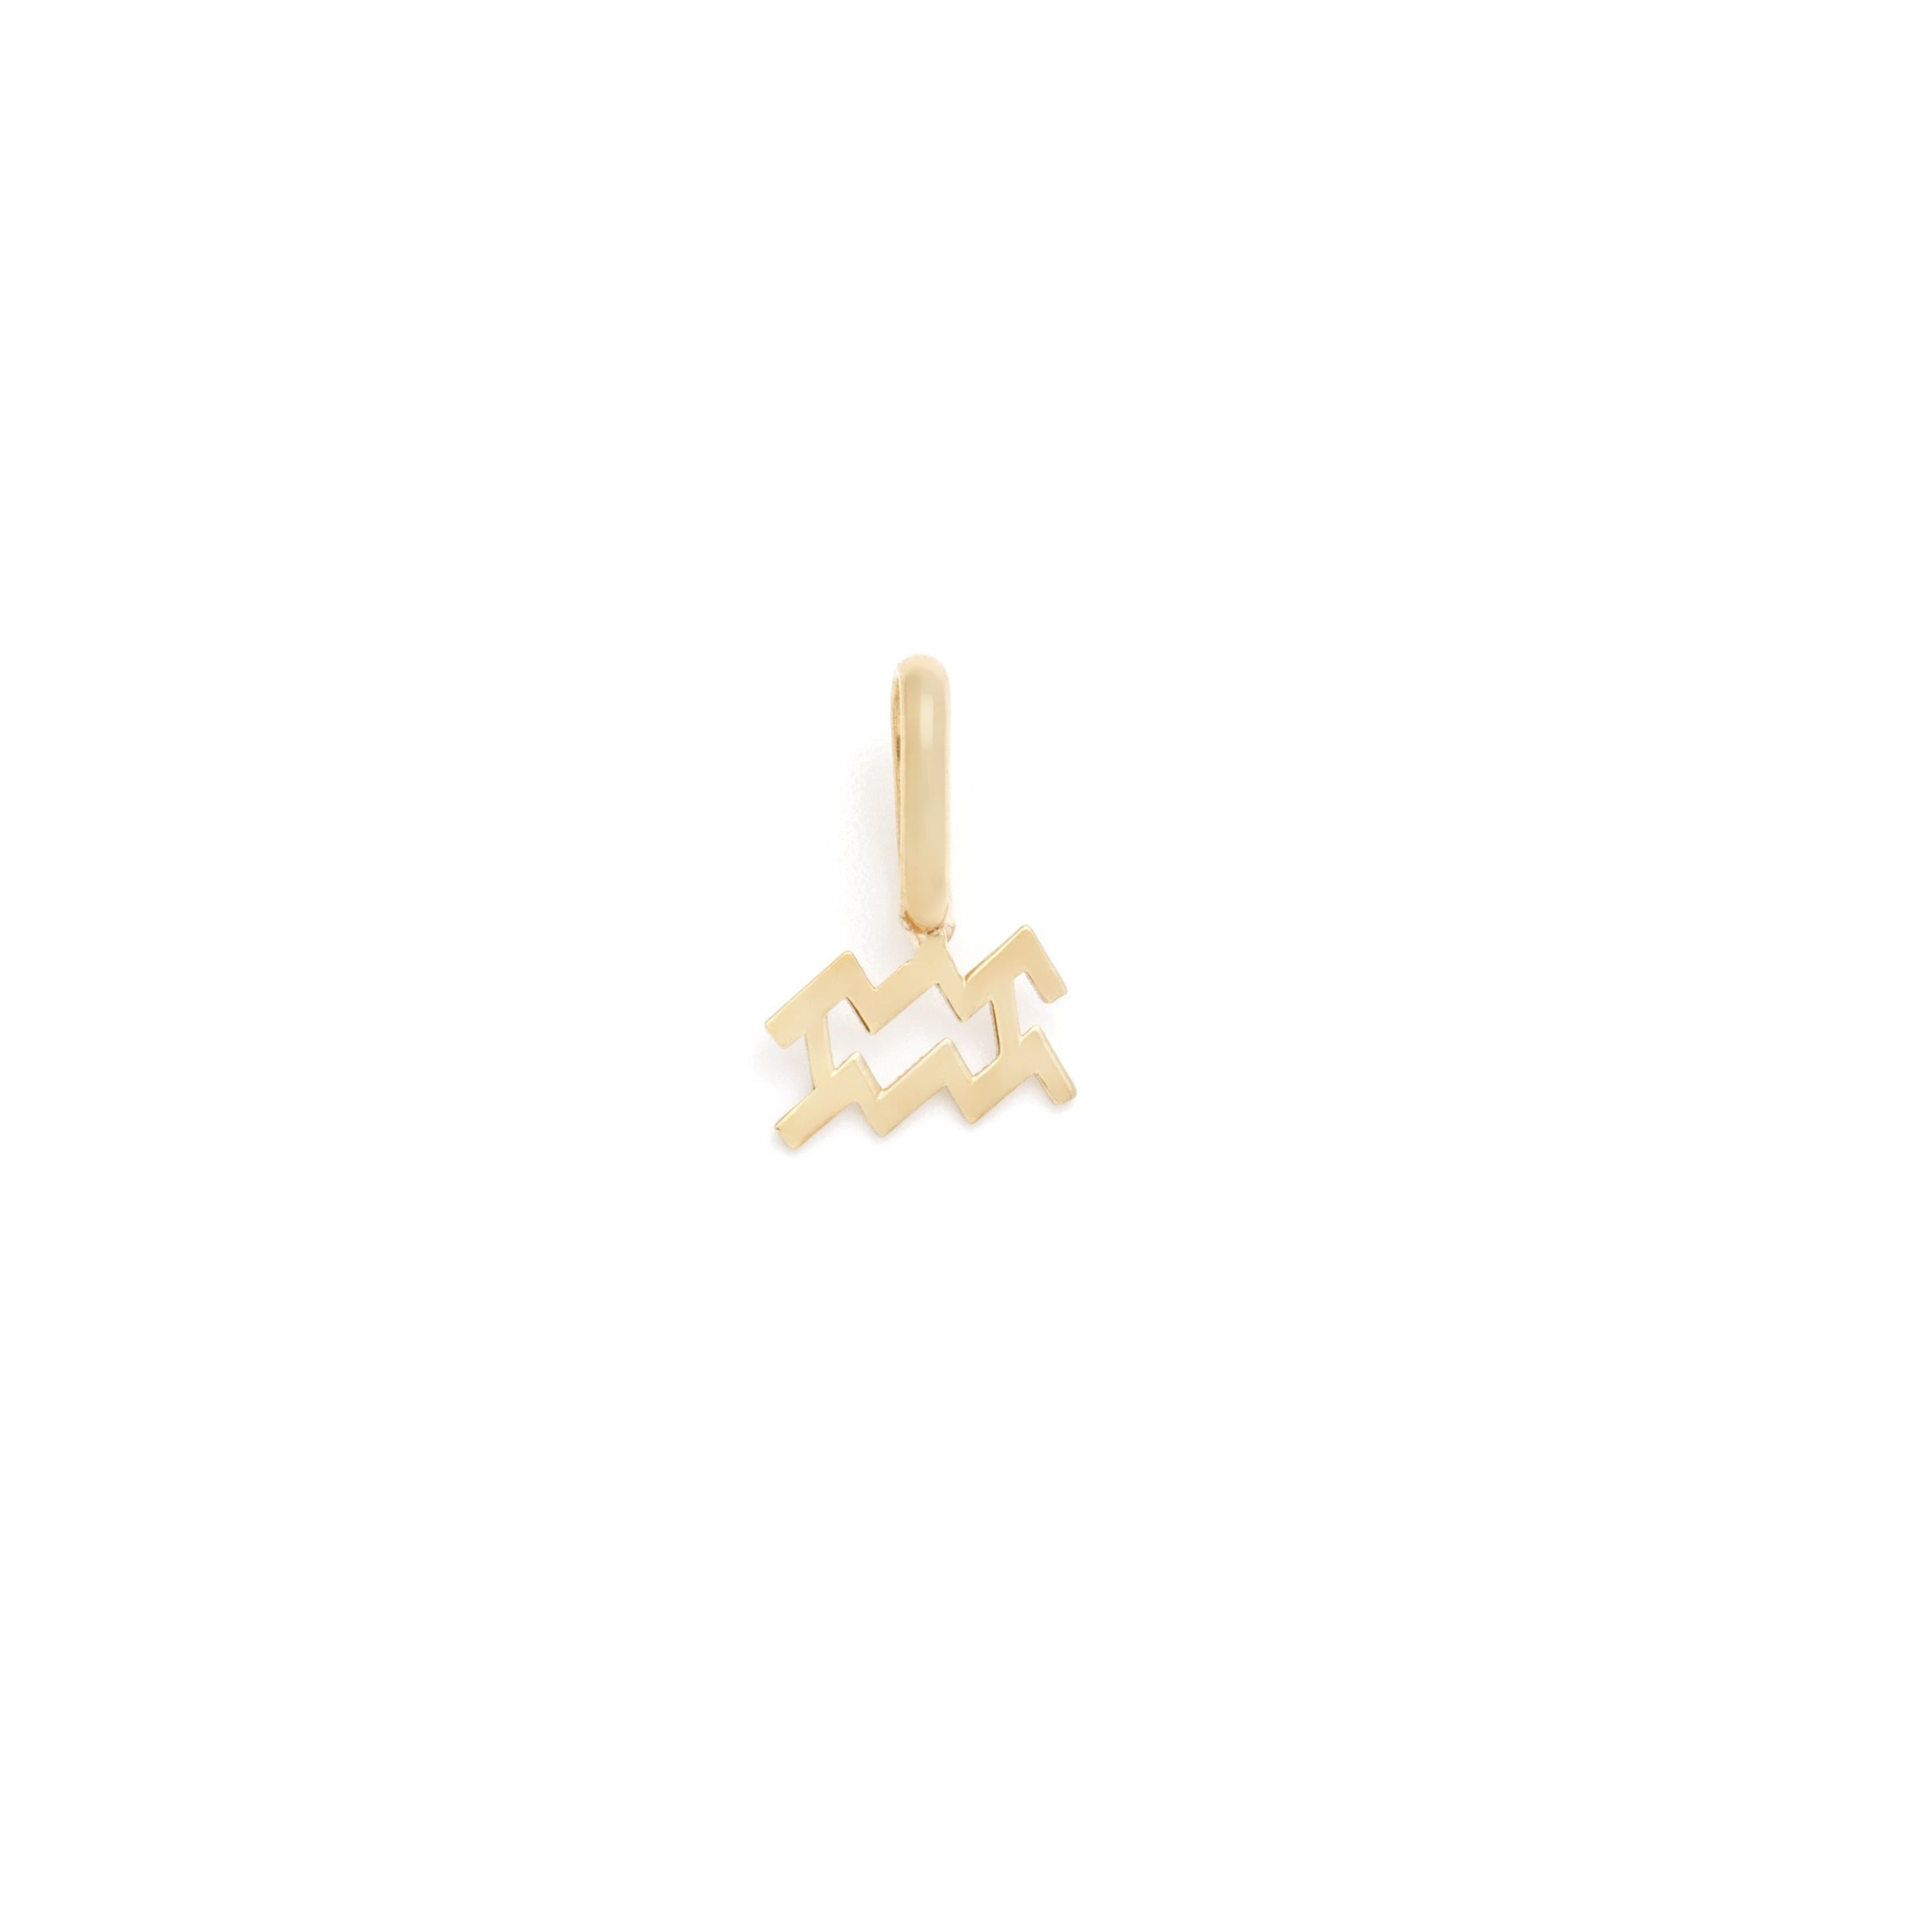 Aquarius Zodiac Charm - 10k Solid Gold